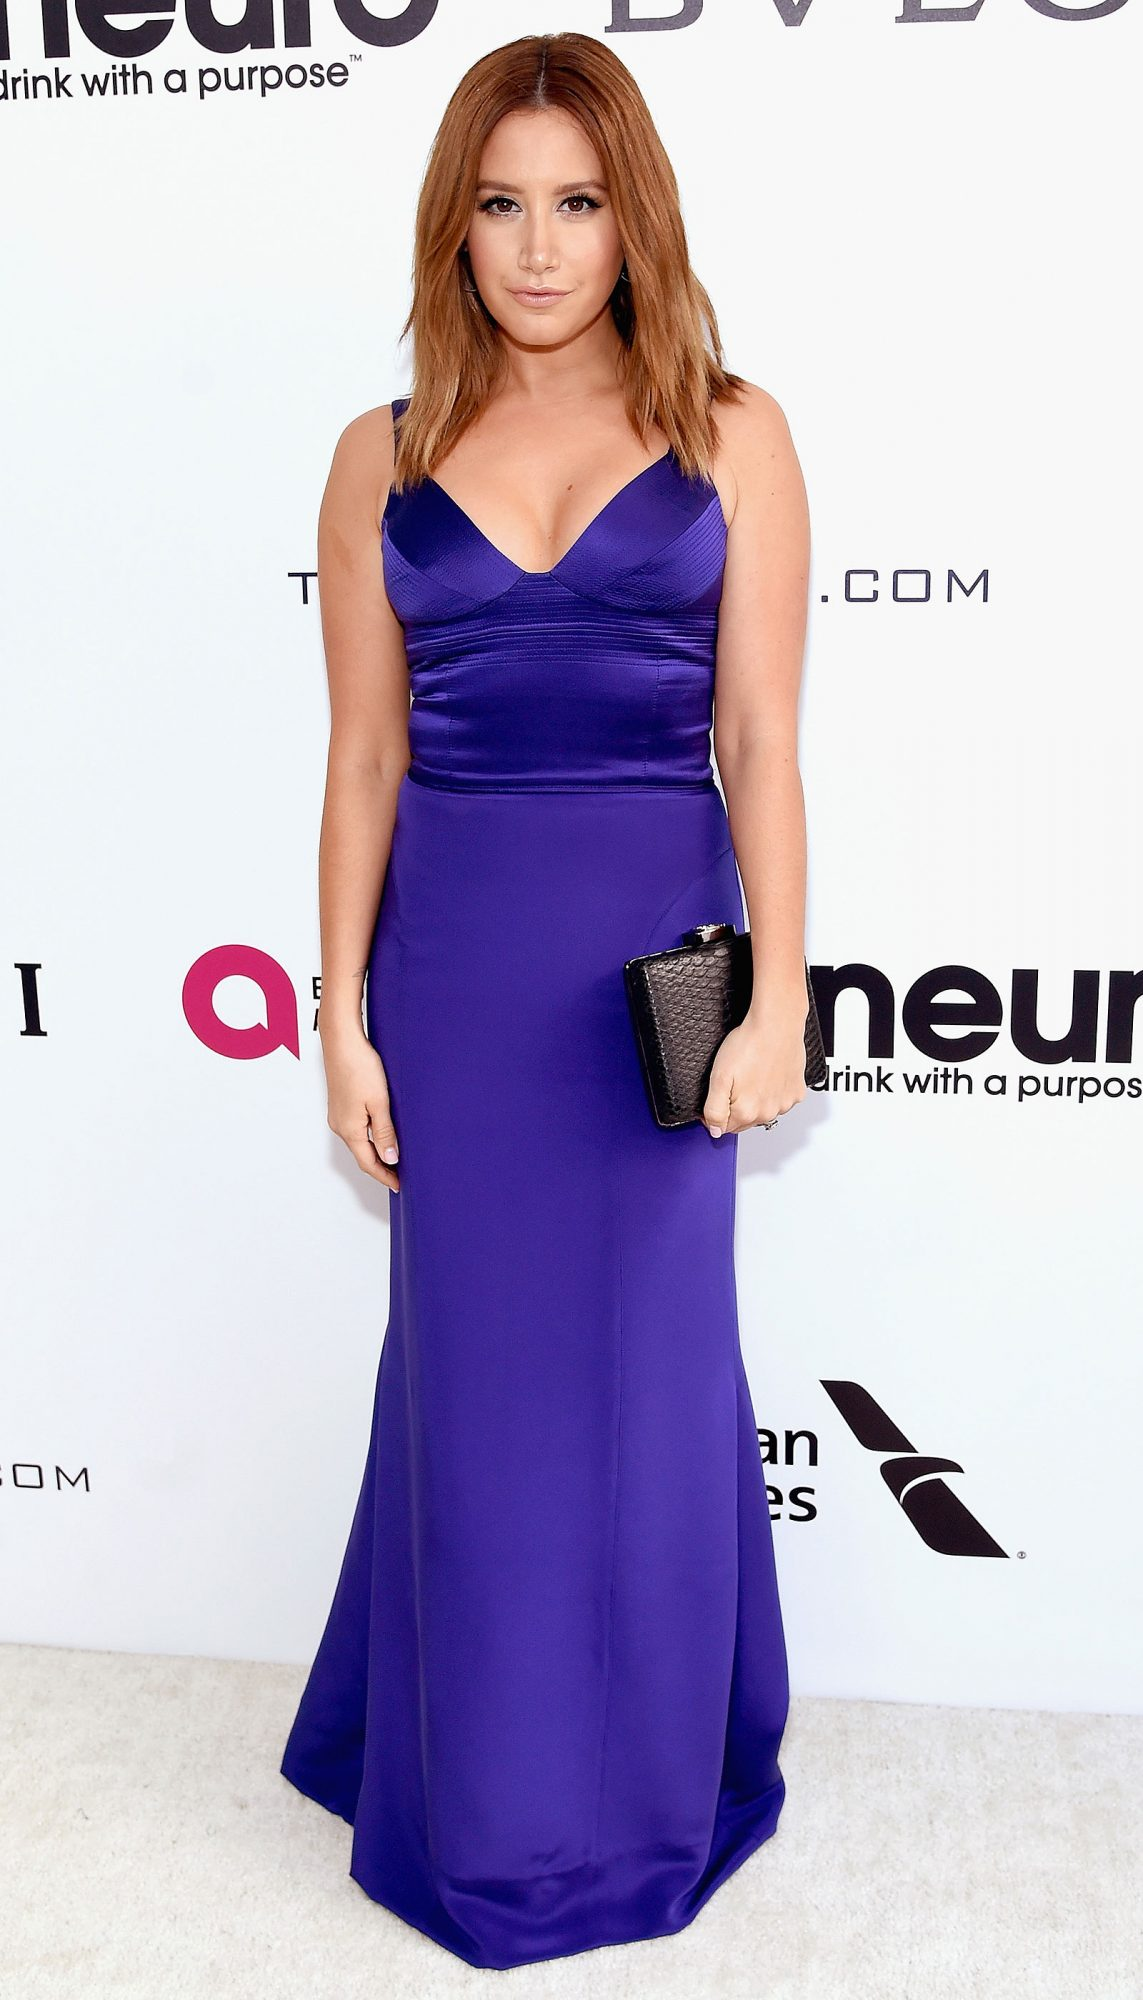 25th Annual Elton John AIDS Foundation's Academy Awards Viewing Party - Red Carpet